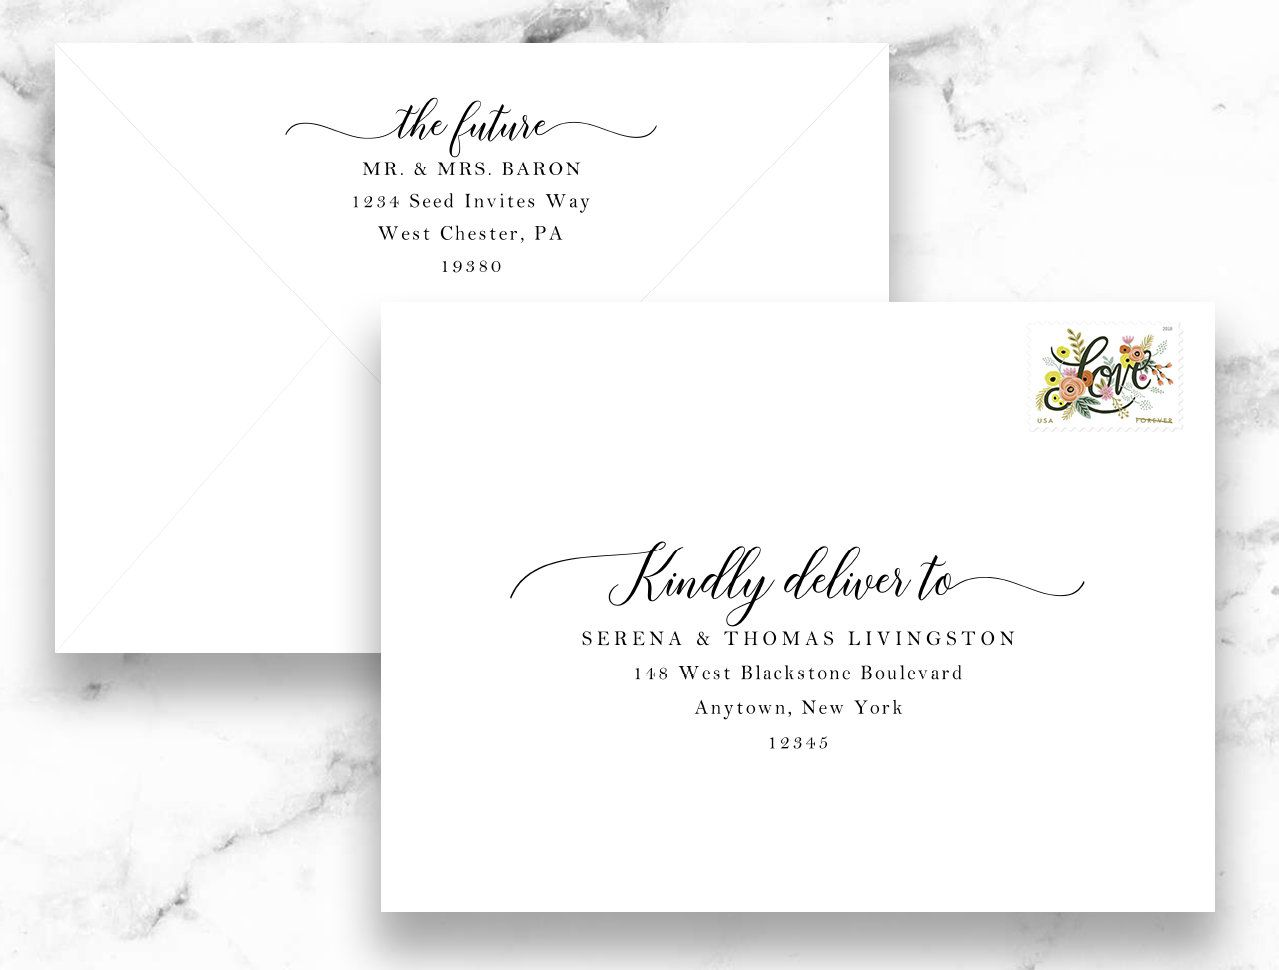 A7 Envelope Addressing Calligraphy Envelope Address Printing